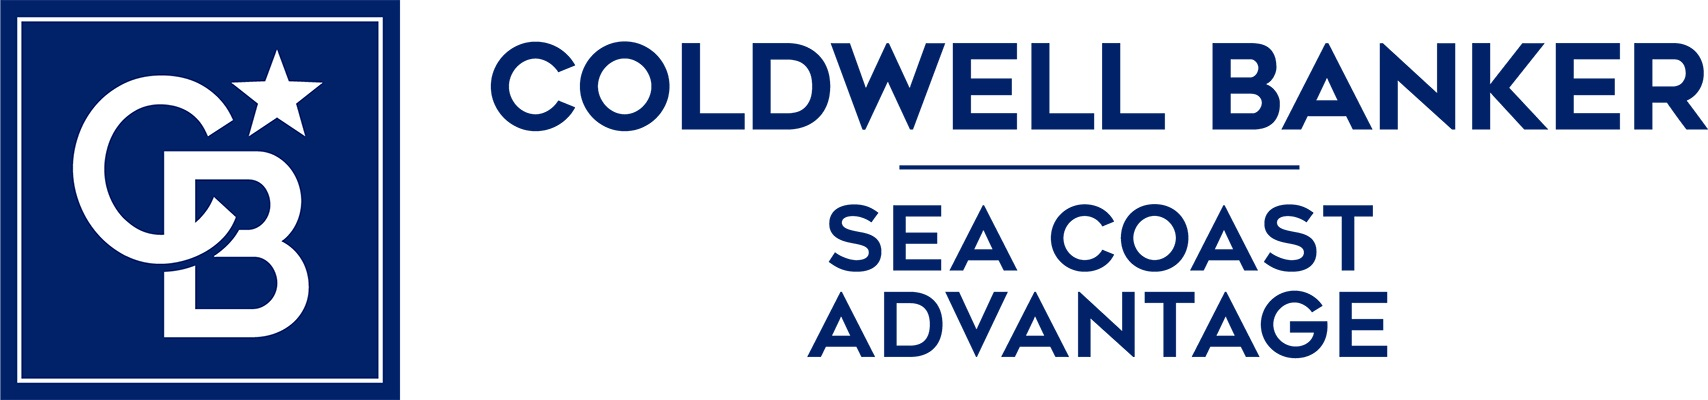 Kayla Ward - Coldwell Banker Sea Coast Advantage Realty